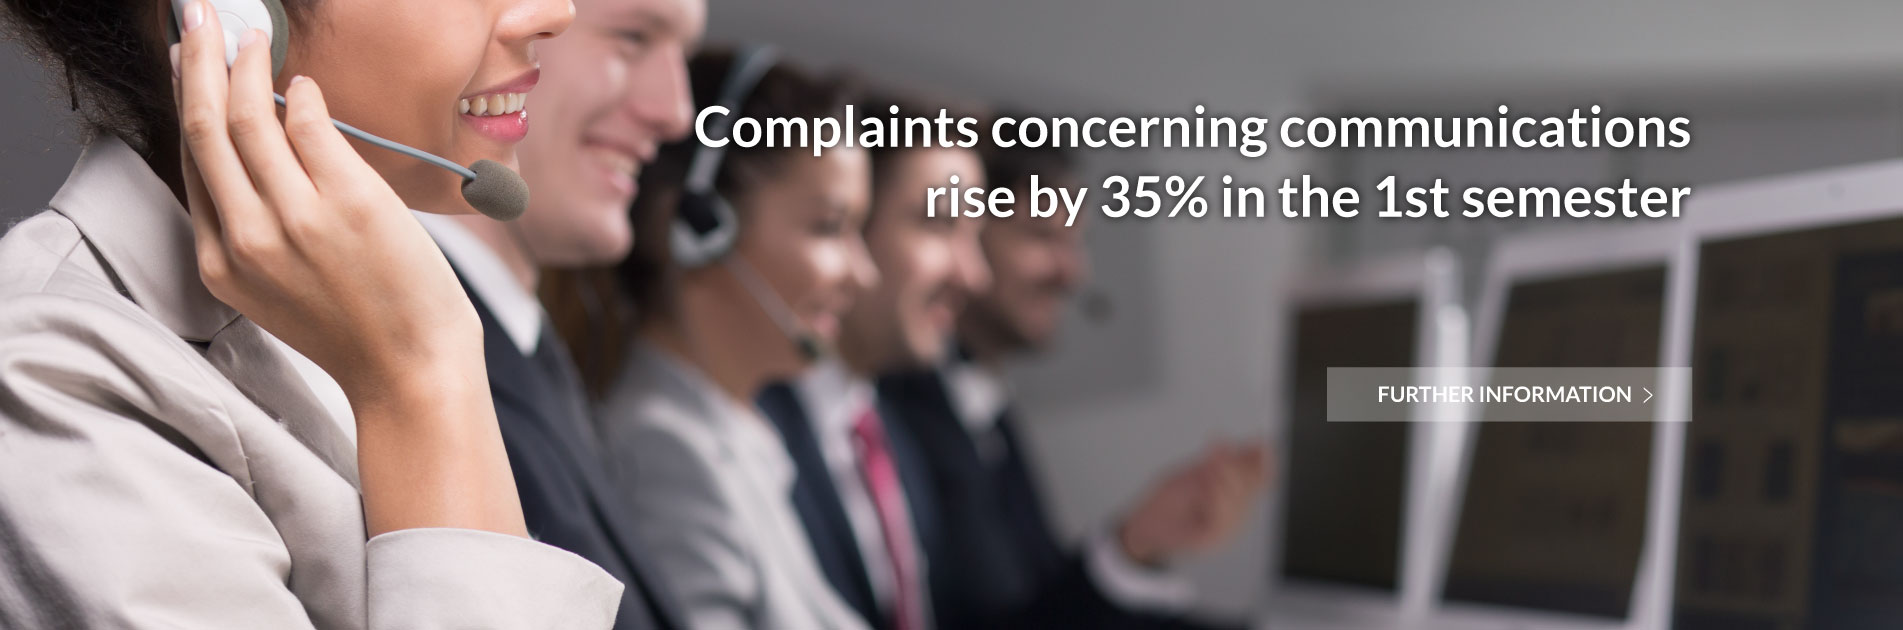 Complaints concerning communications rise by 35% in the 1st semester.